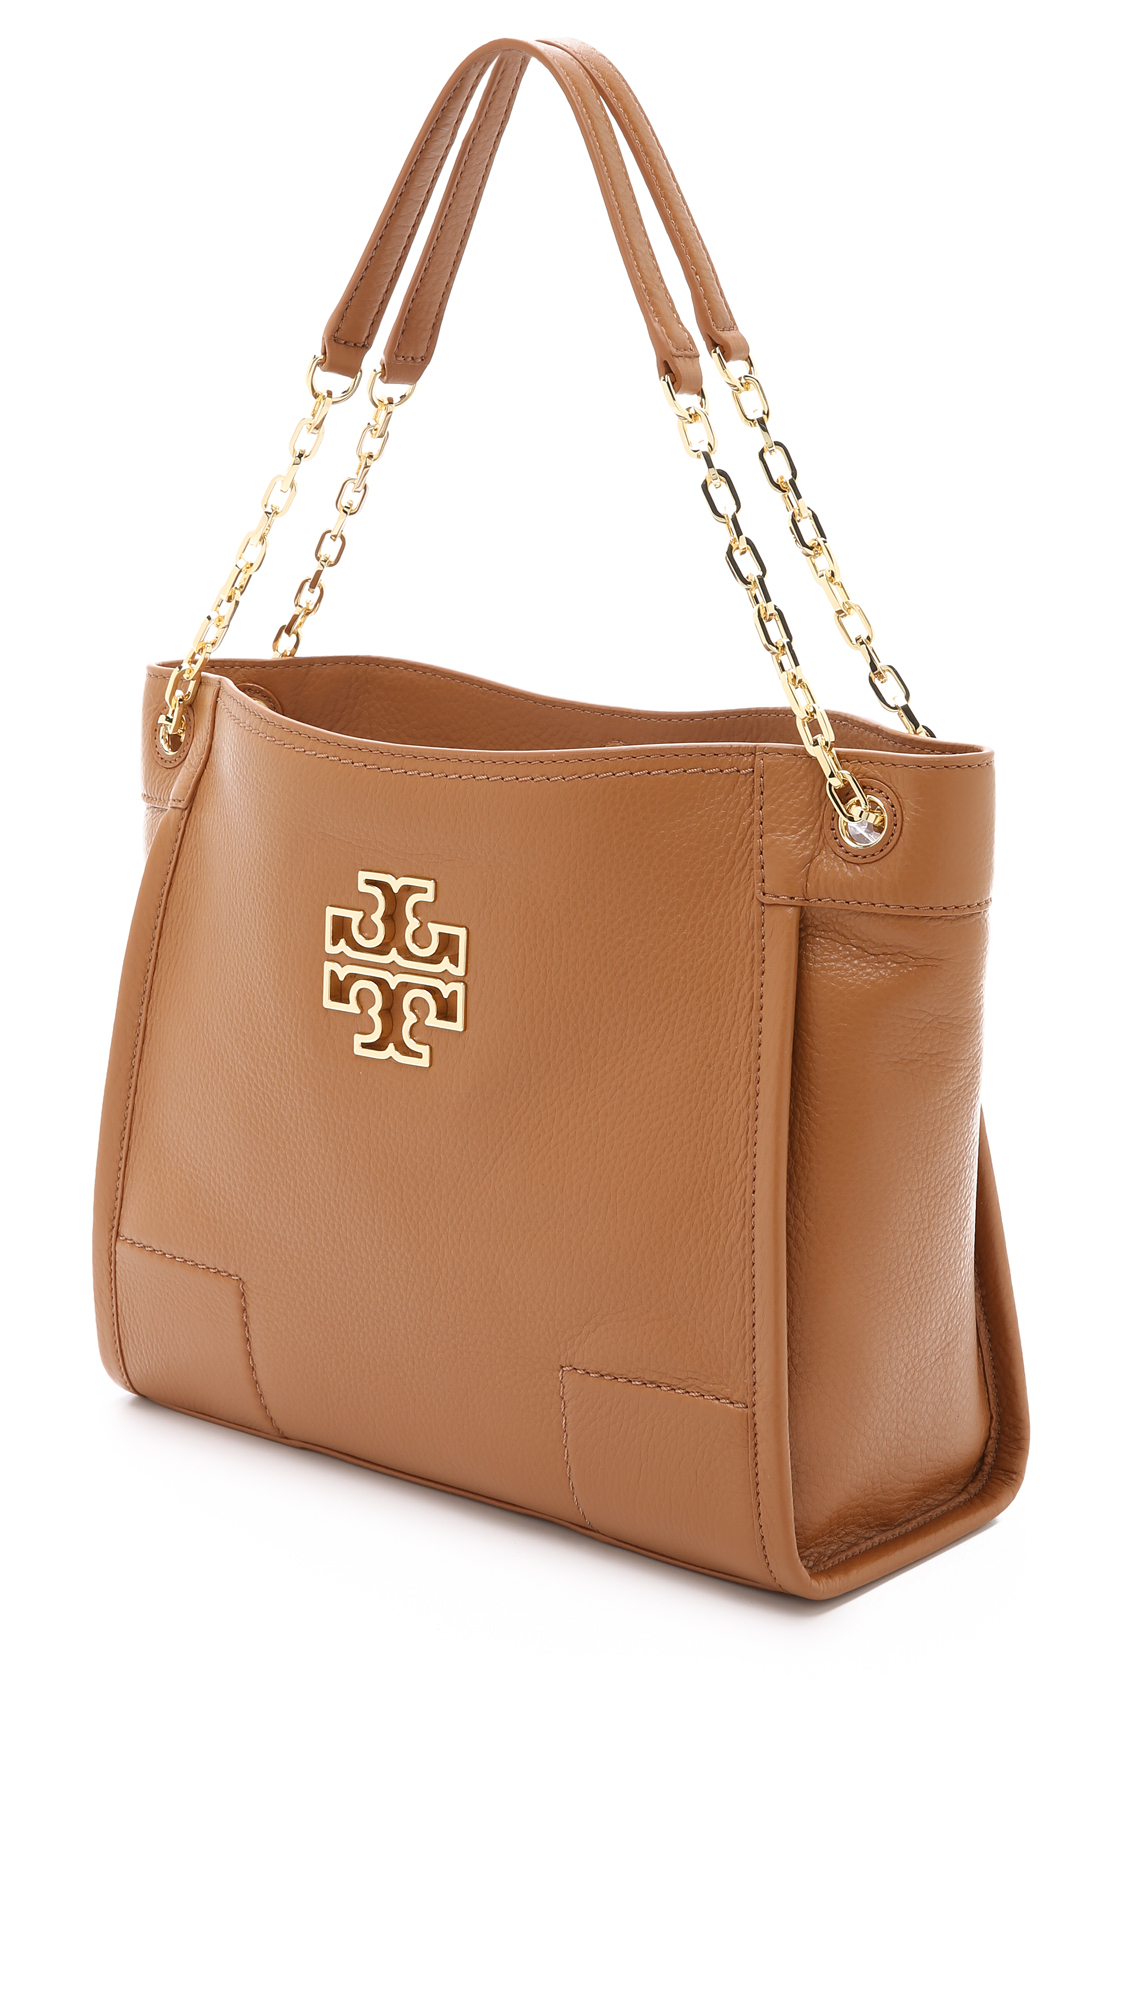 53b808514a91 Lyst - Tory Burch Britten Small Slouchy Tote - Bark in Brown